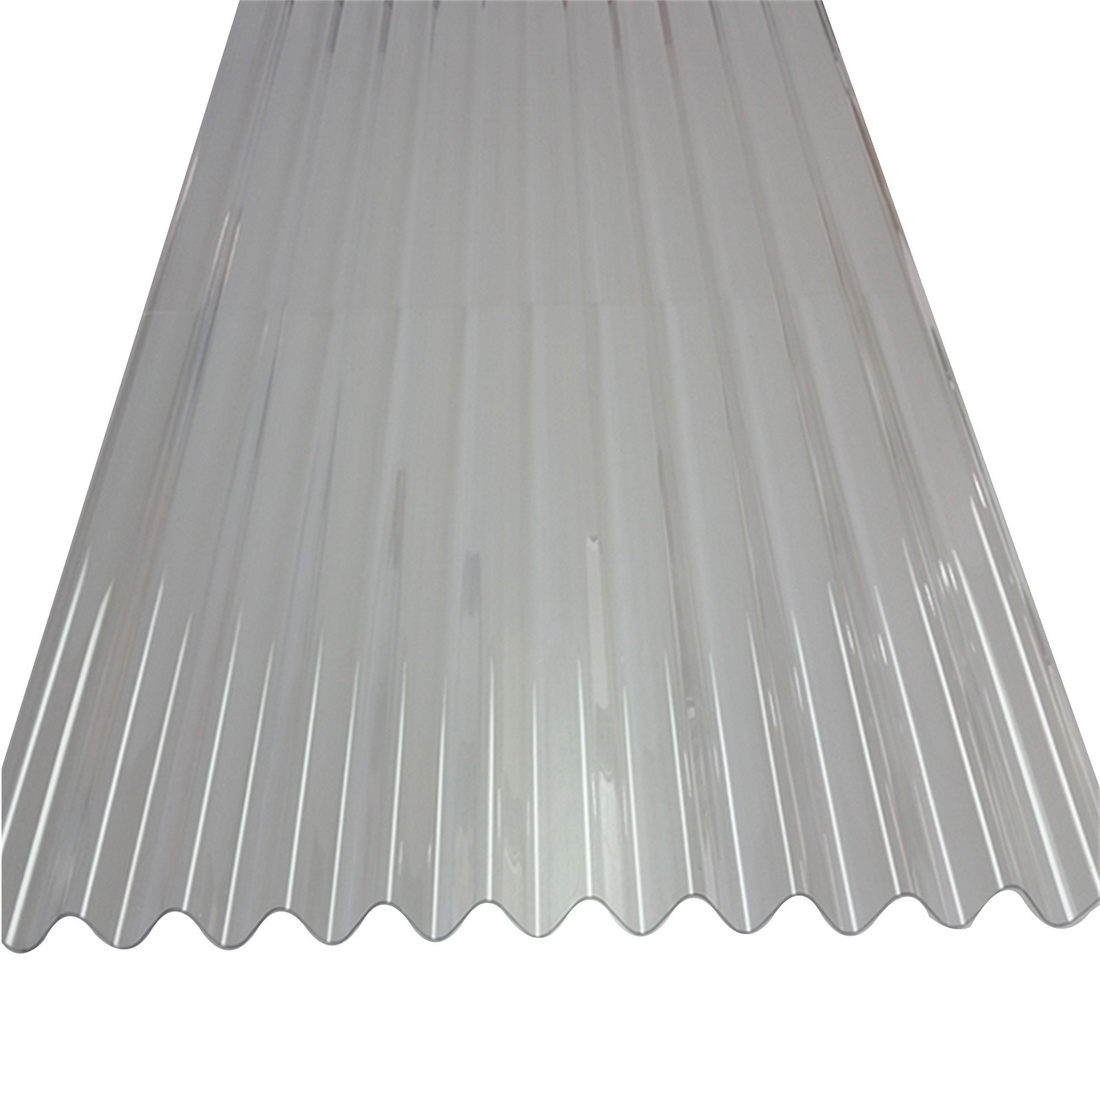 Sunlite Corrugated Roofing 3000 x 660 x 0.8mm PVC Clear SUN-CORR-CLR-3000